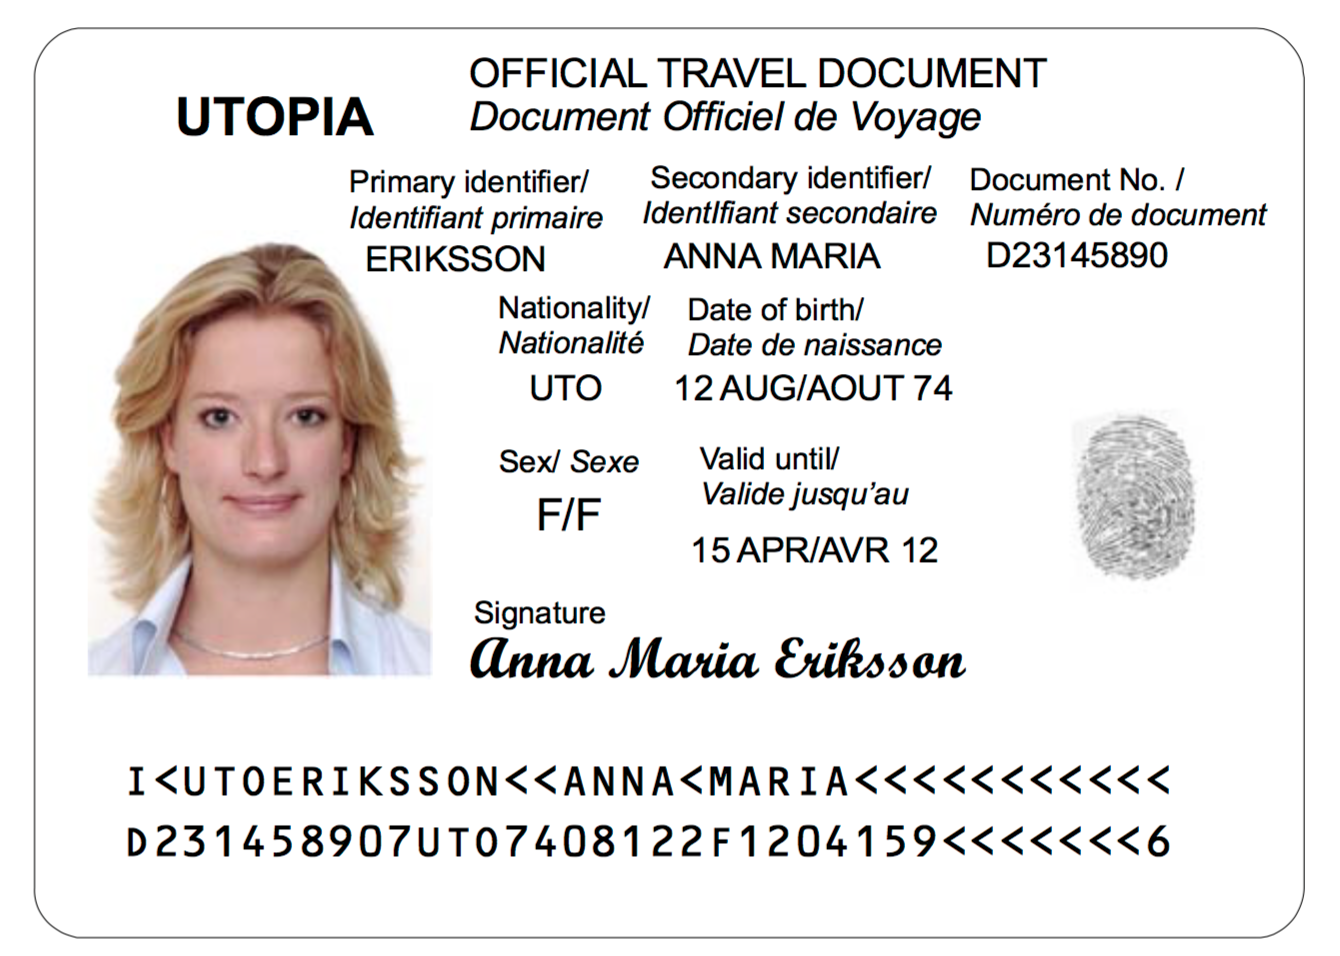 A TD2 Machine Readable Official Travel Document